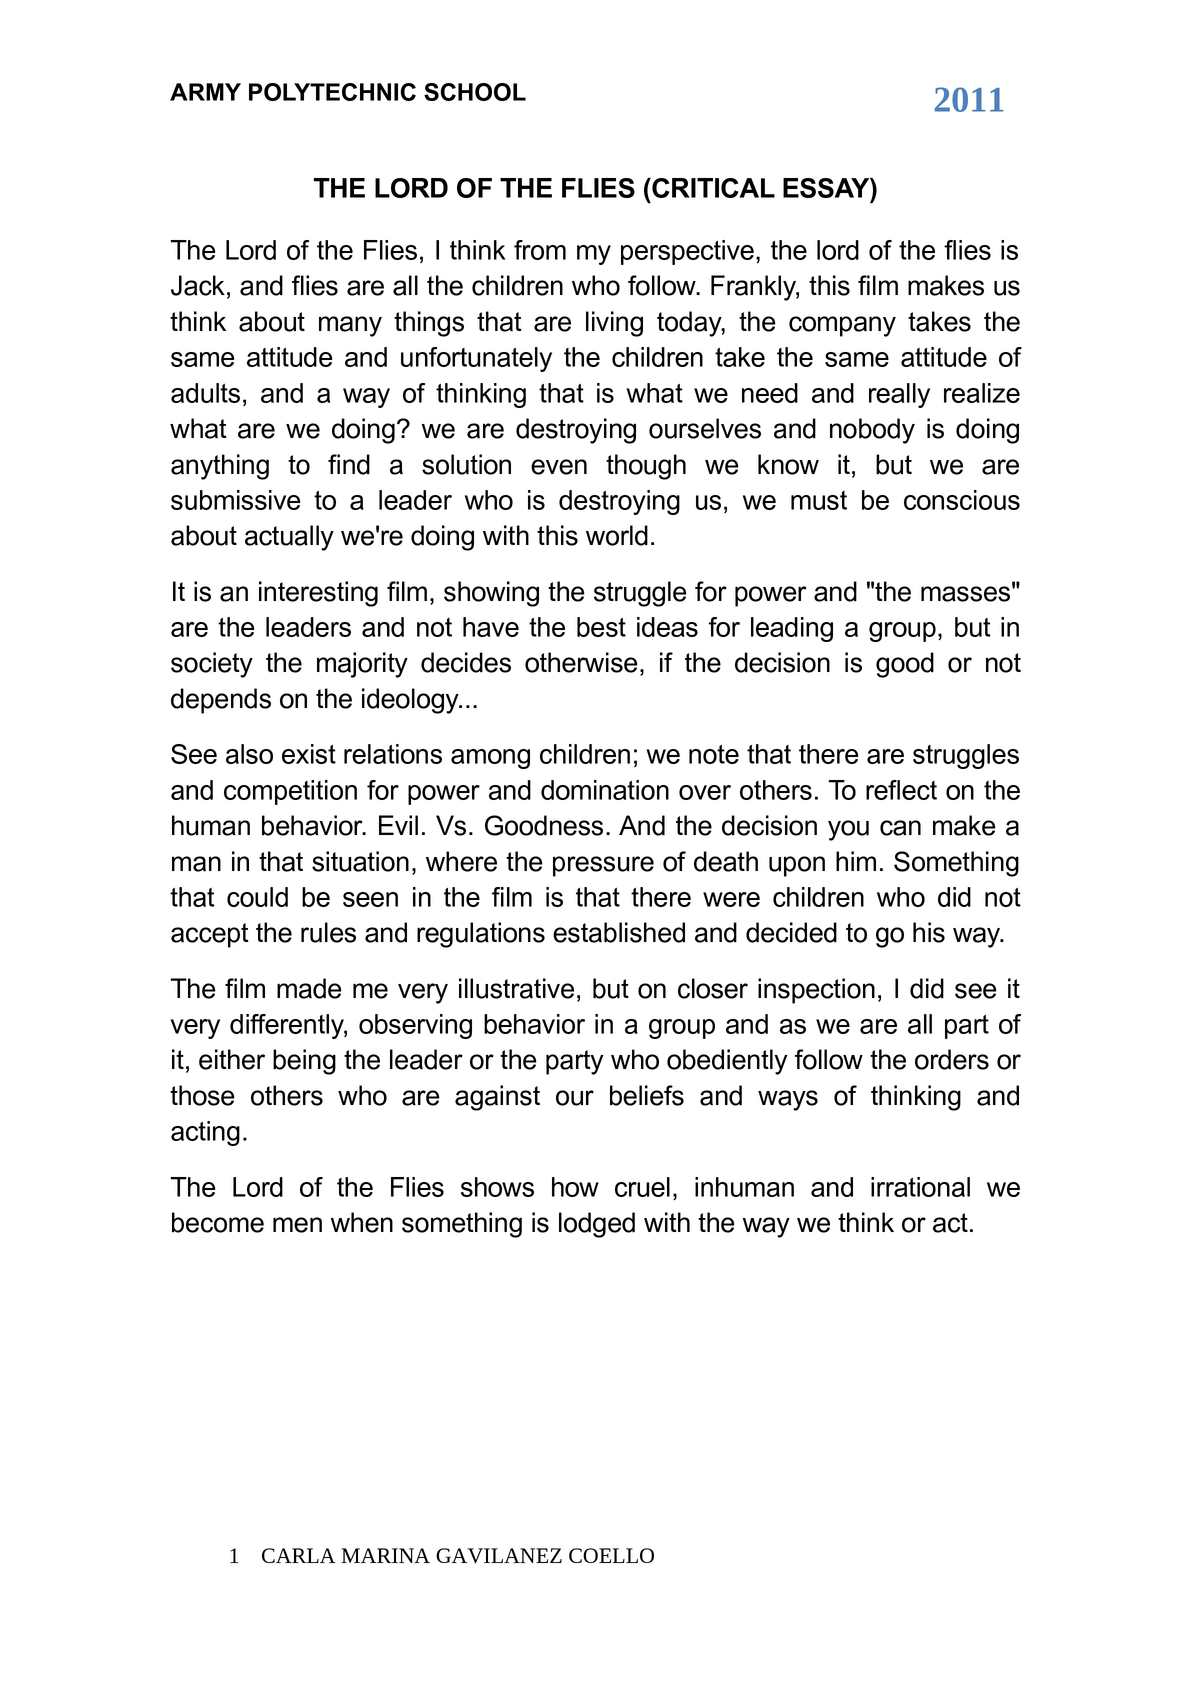 lord of the flies power essay calamatildecopyo the lord of the flies critical essay